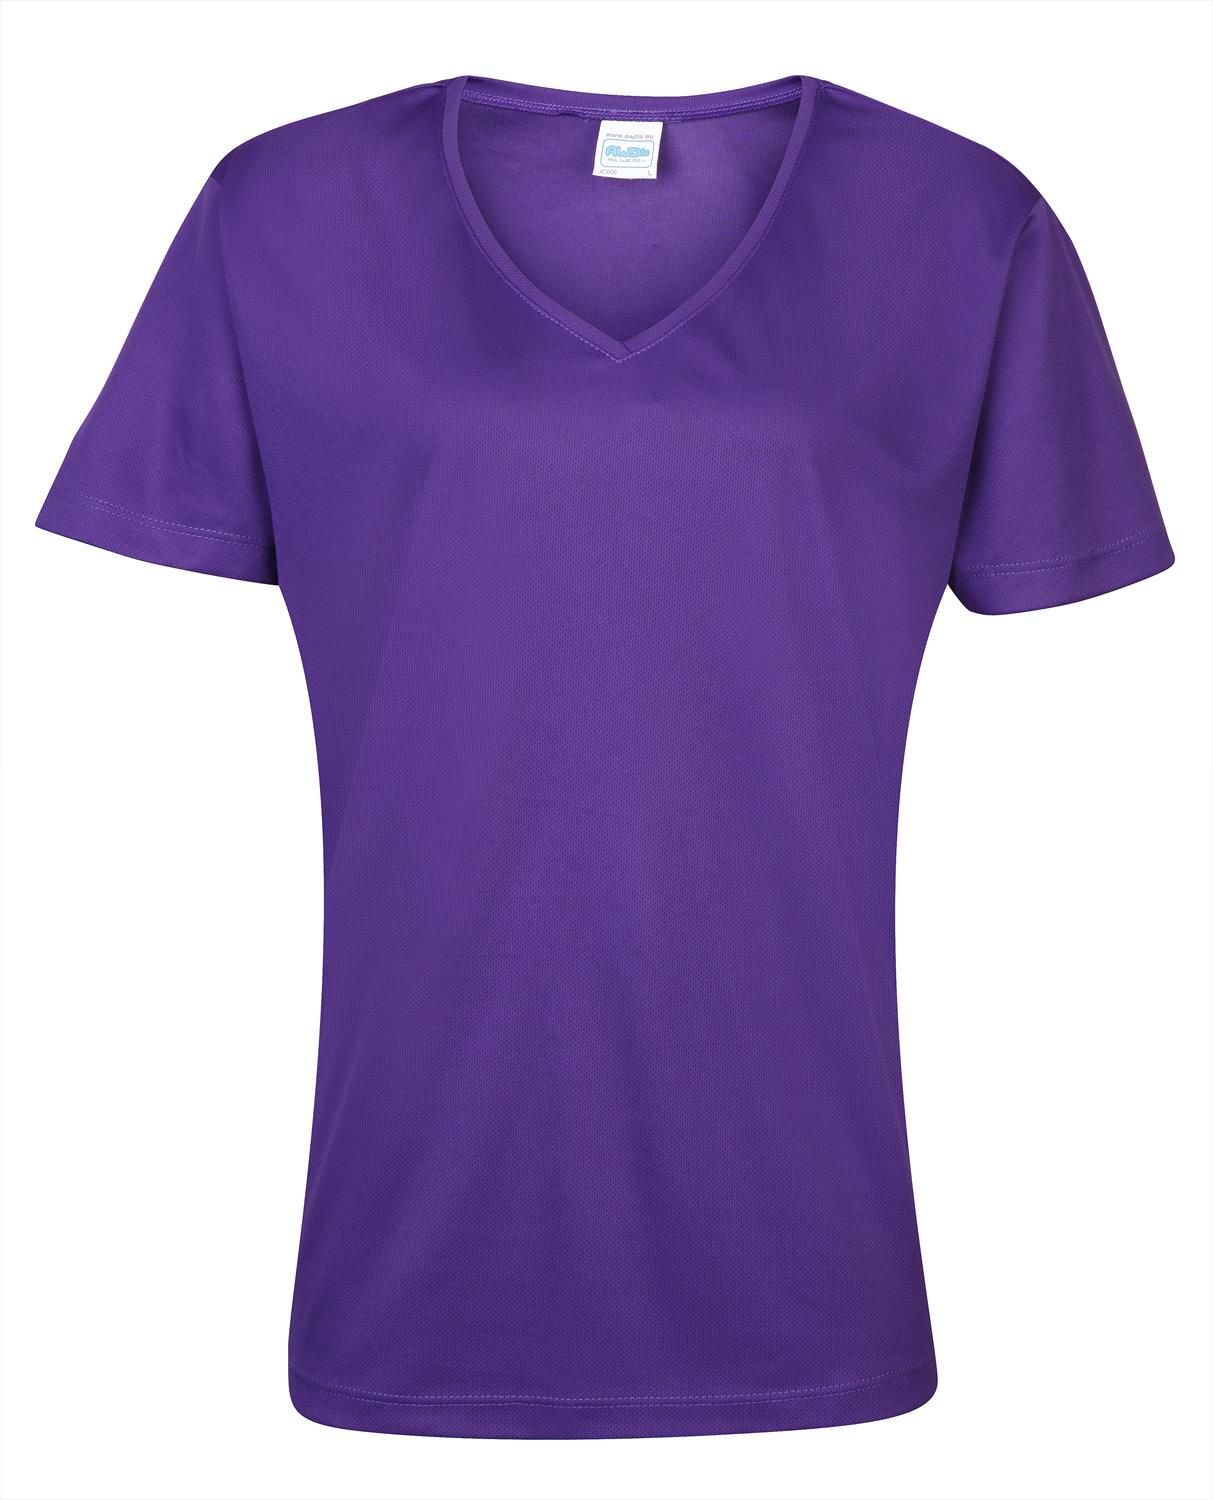 Women S V Neck Cooling T Shirt Apos Women Neck Basic Tops